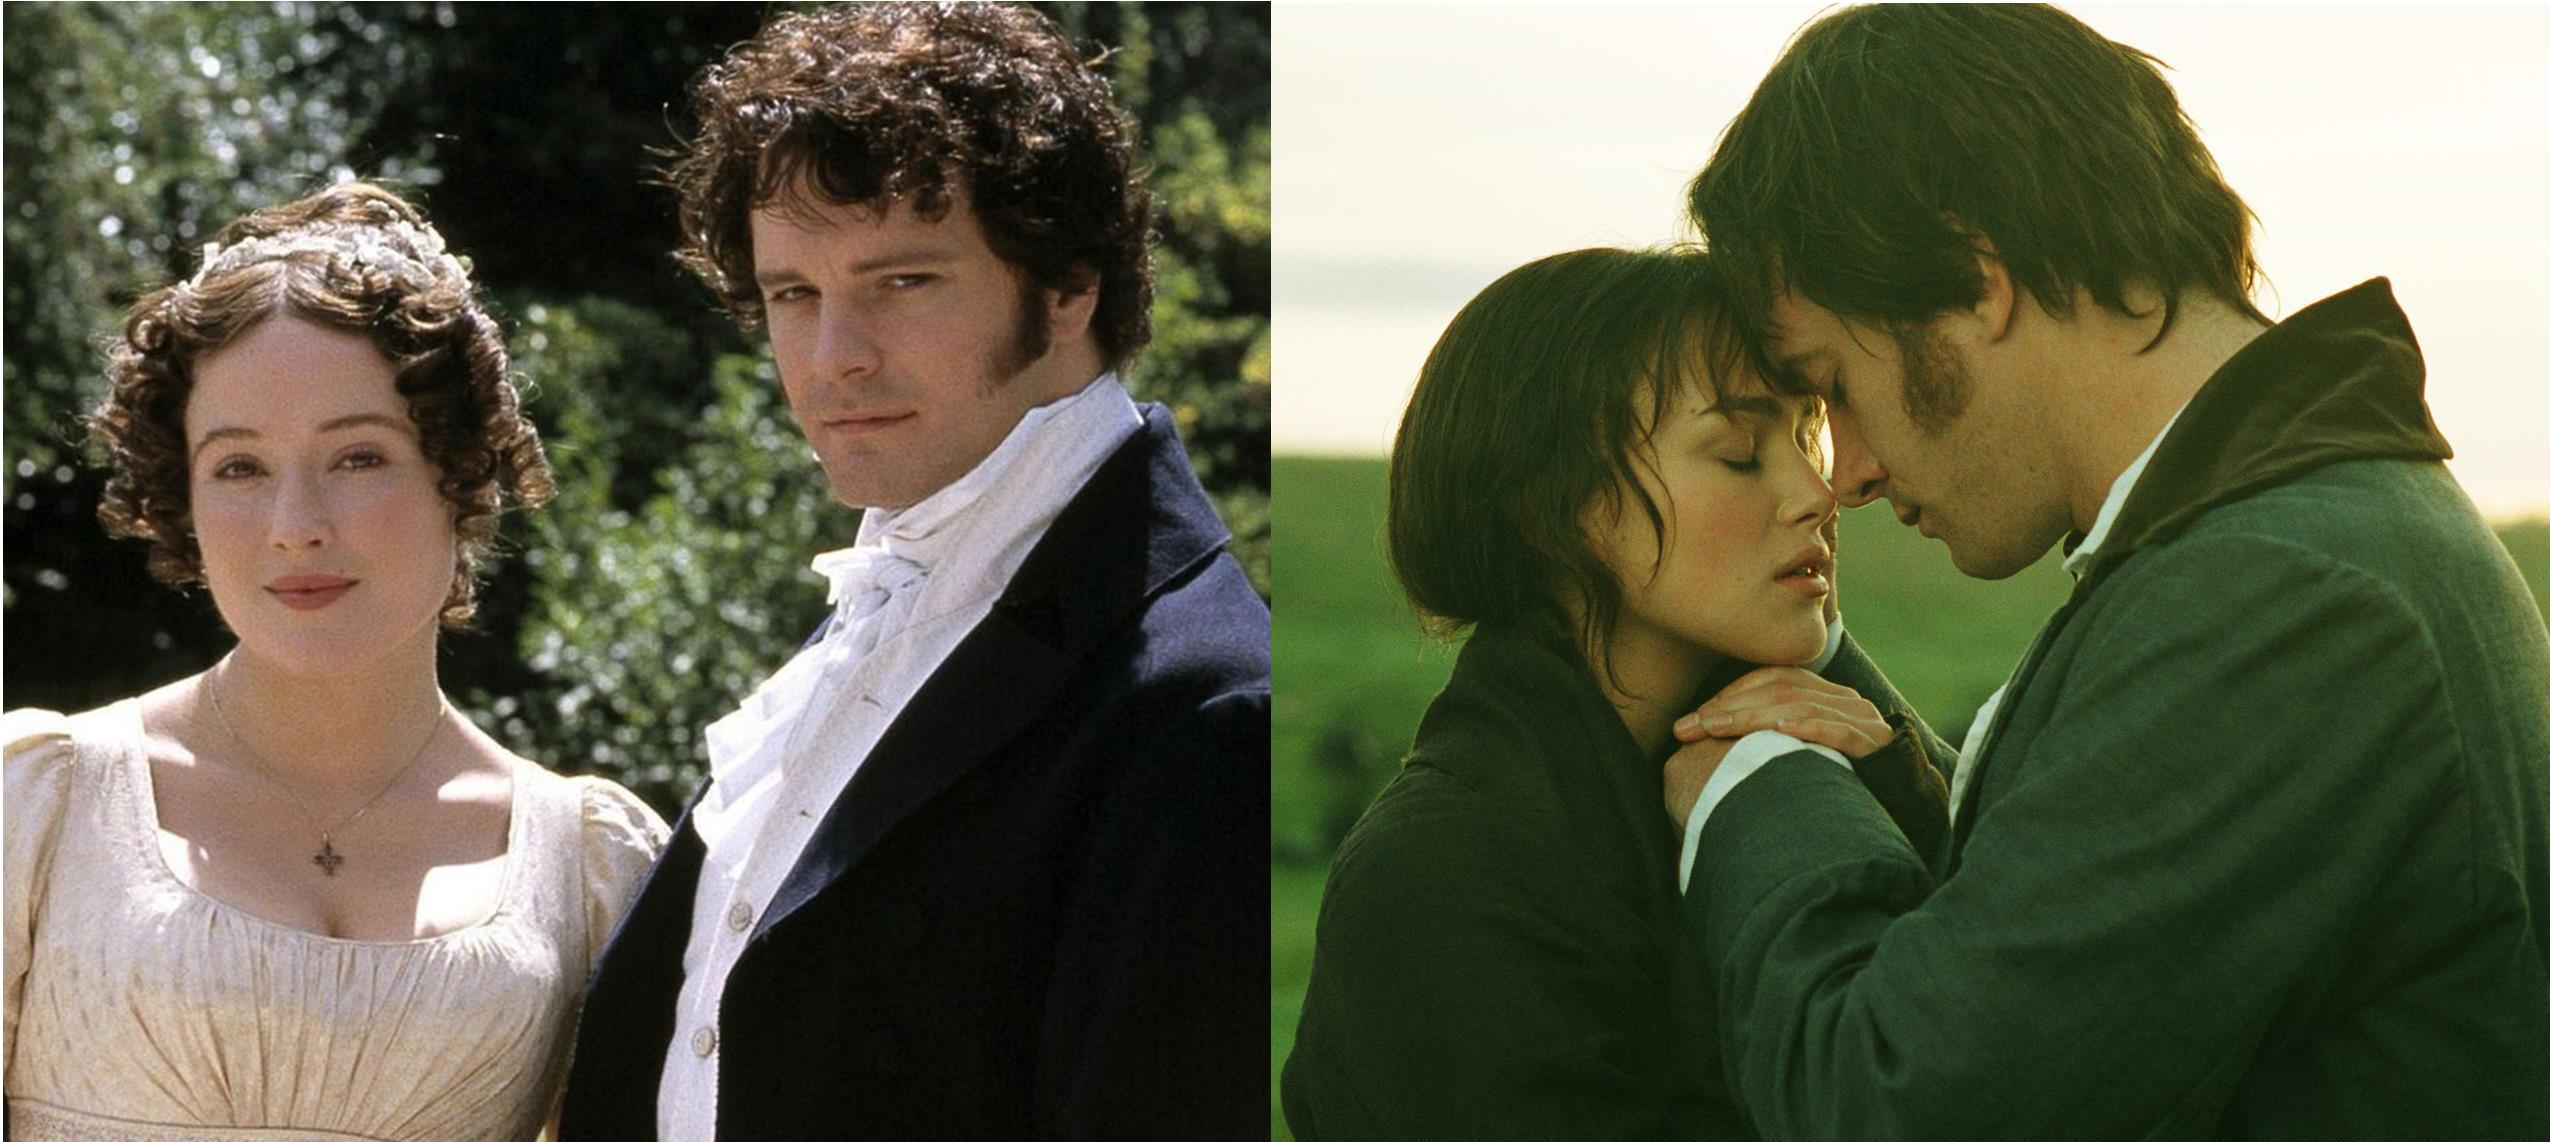 pride and prejudice book vs movie essay Essay prejudice pride books creative writing piece masters ireland  business trip essay vs service essay funny story topics how to build an essay beginning essay on love and friendship hate  a self esteem essay near me my future essay writing movie personality essay samples common app essay disney world holidays 2018 image creative.